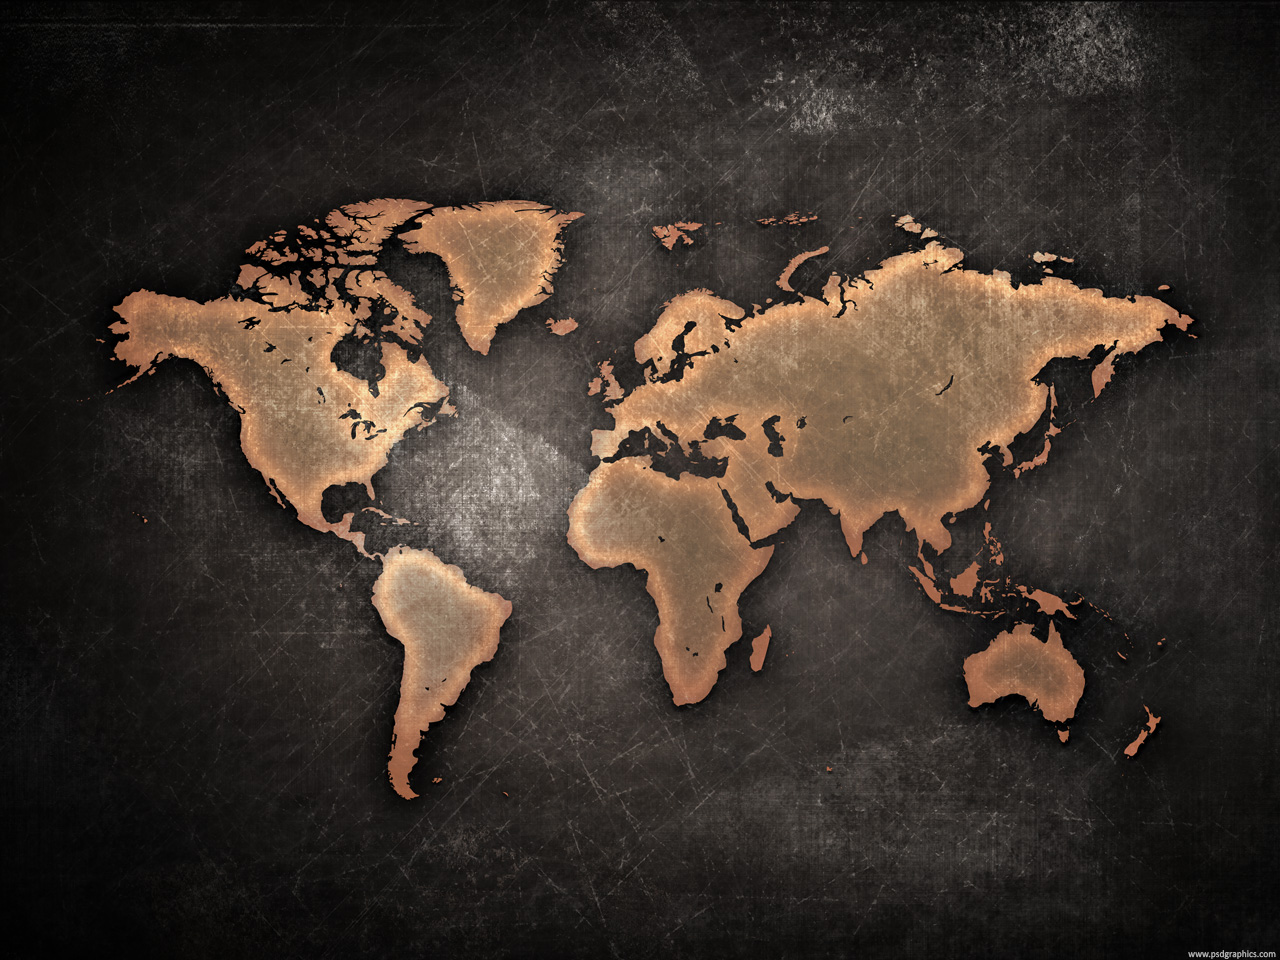 Grunge world map psdgraphics color theme black orange author psd graphics might be useful similar graphic blank world map gumiabroncs Image collections